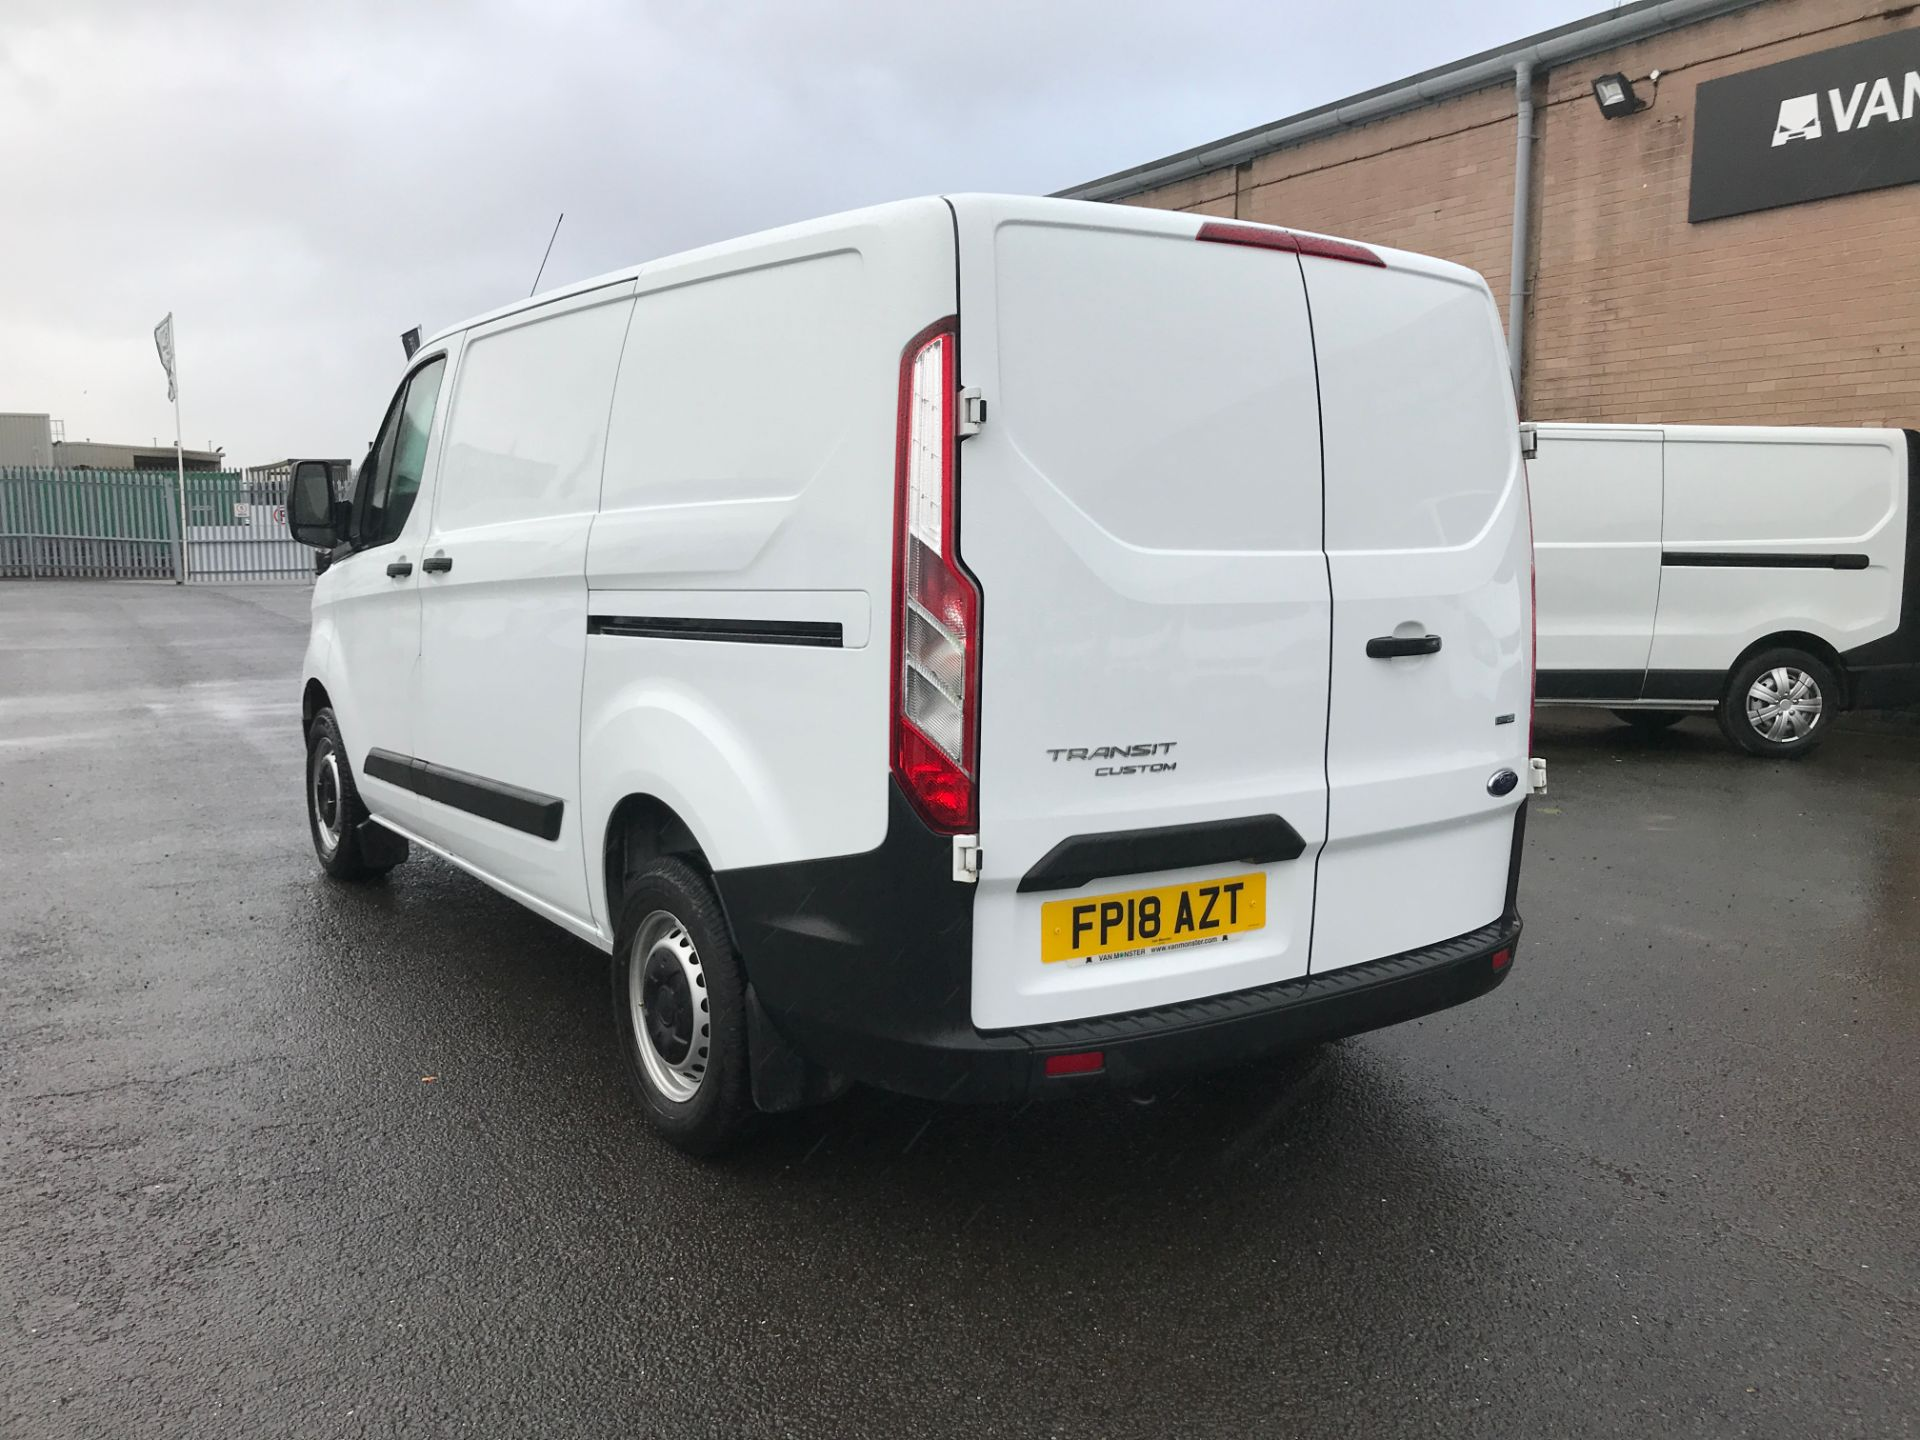 2018 Ford Transit Custom 300 L1 2.0TDCI 105PS LOW ROOF EURO 6 (FP18AZT) Image 9